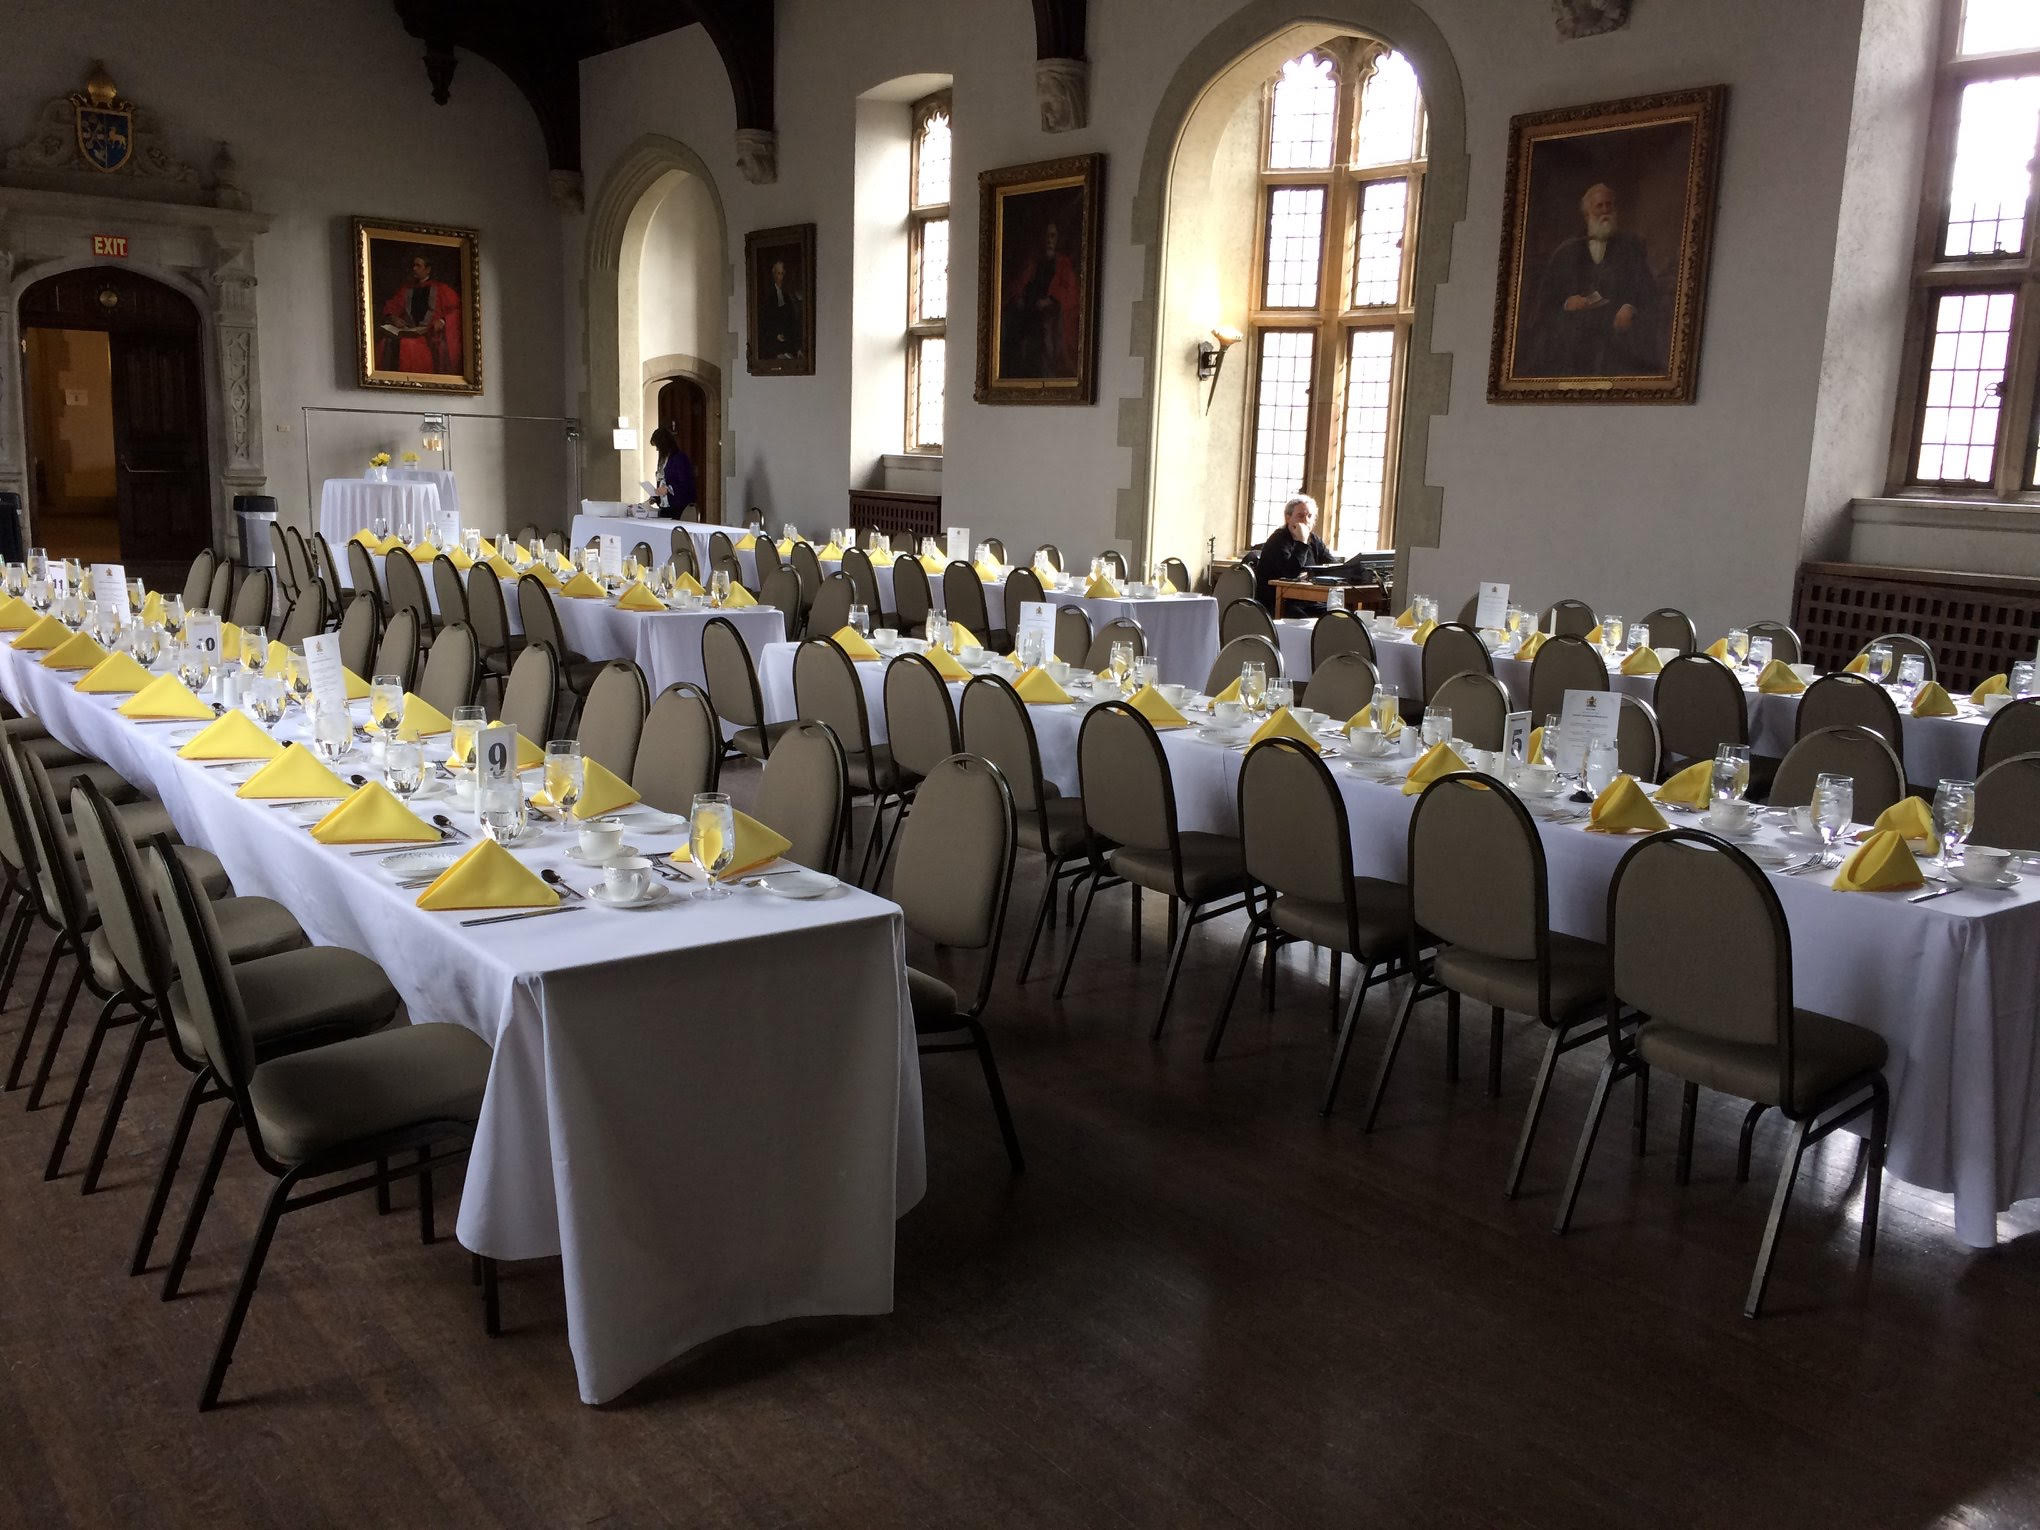 A decorated banquet hall